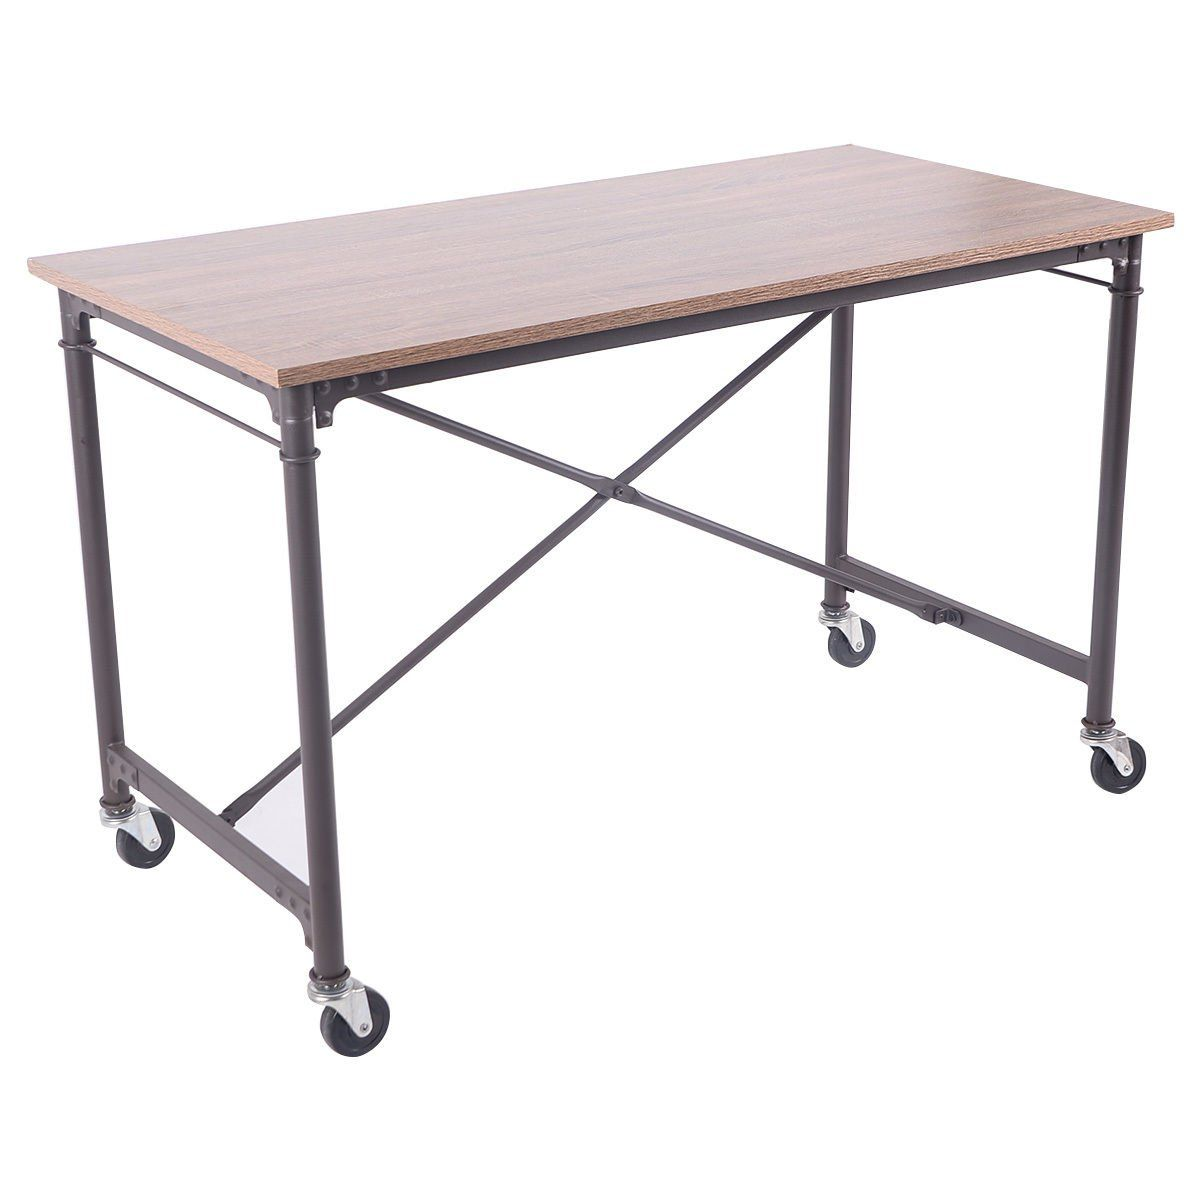 Tangkula computer desk laptop writing table melamine surface wheels